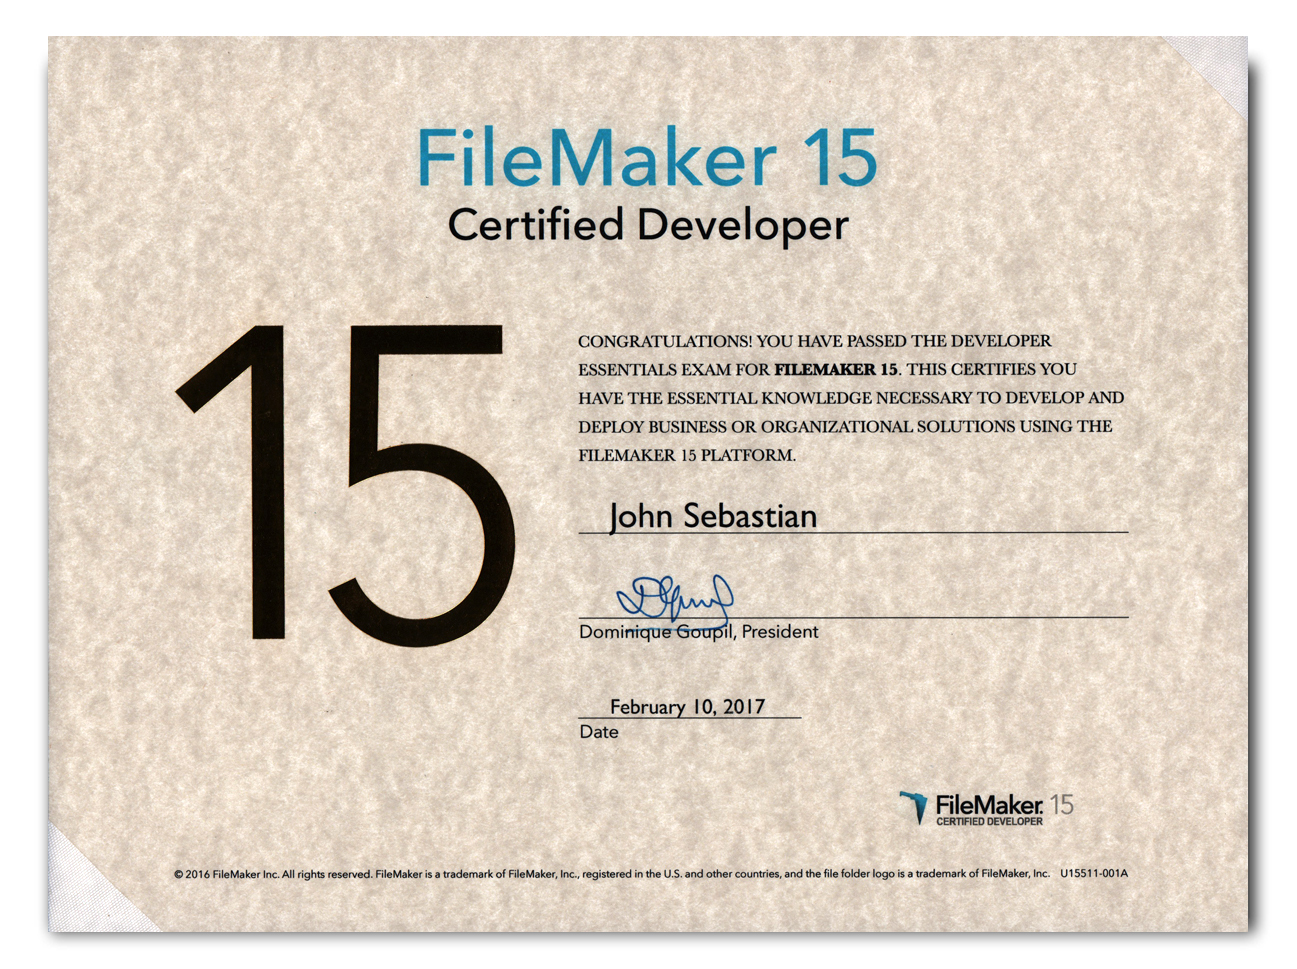 FileMaker Pro Certified Developer, Version 15